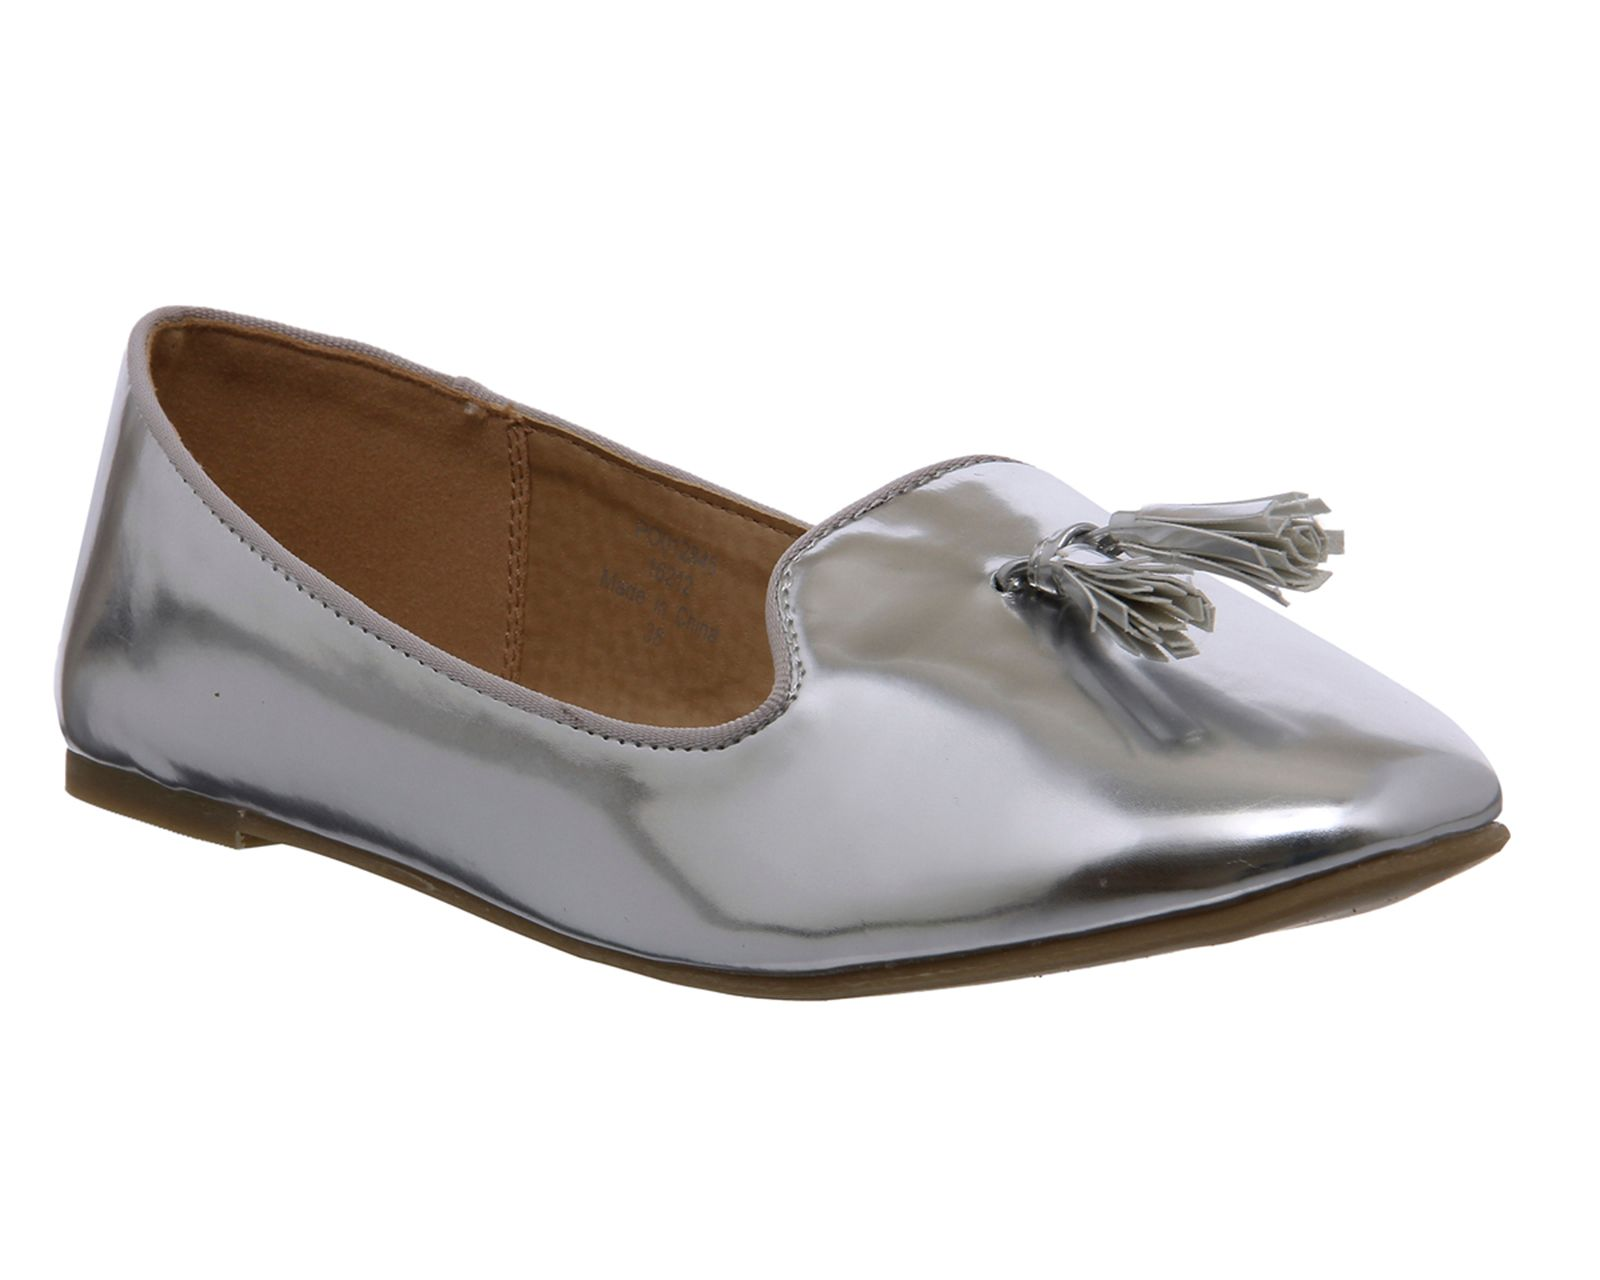 Office Kiwi slipper pumps, Silver